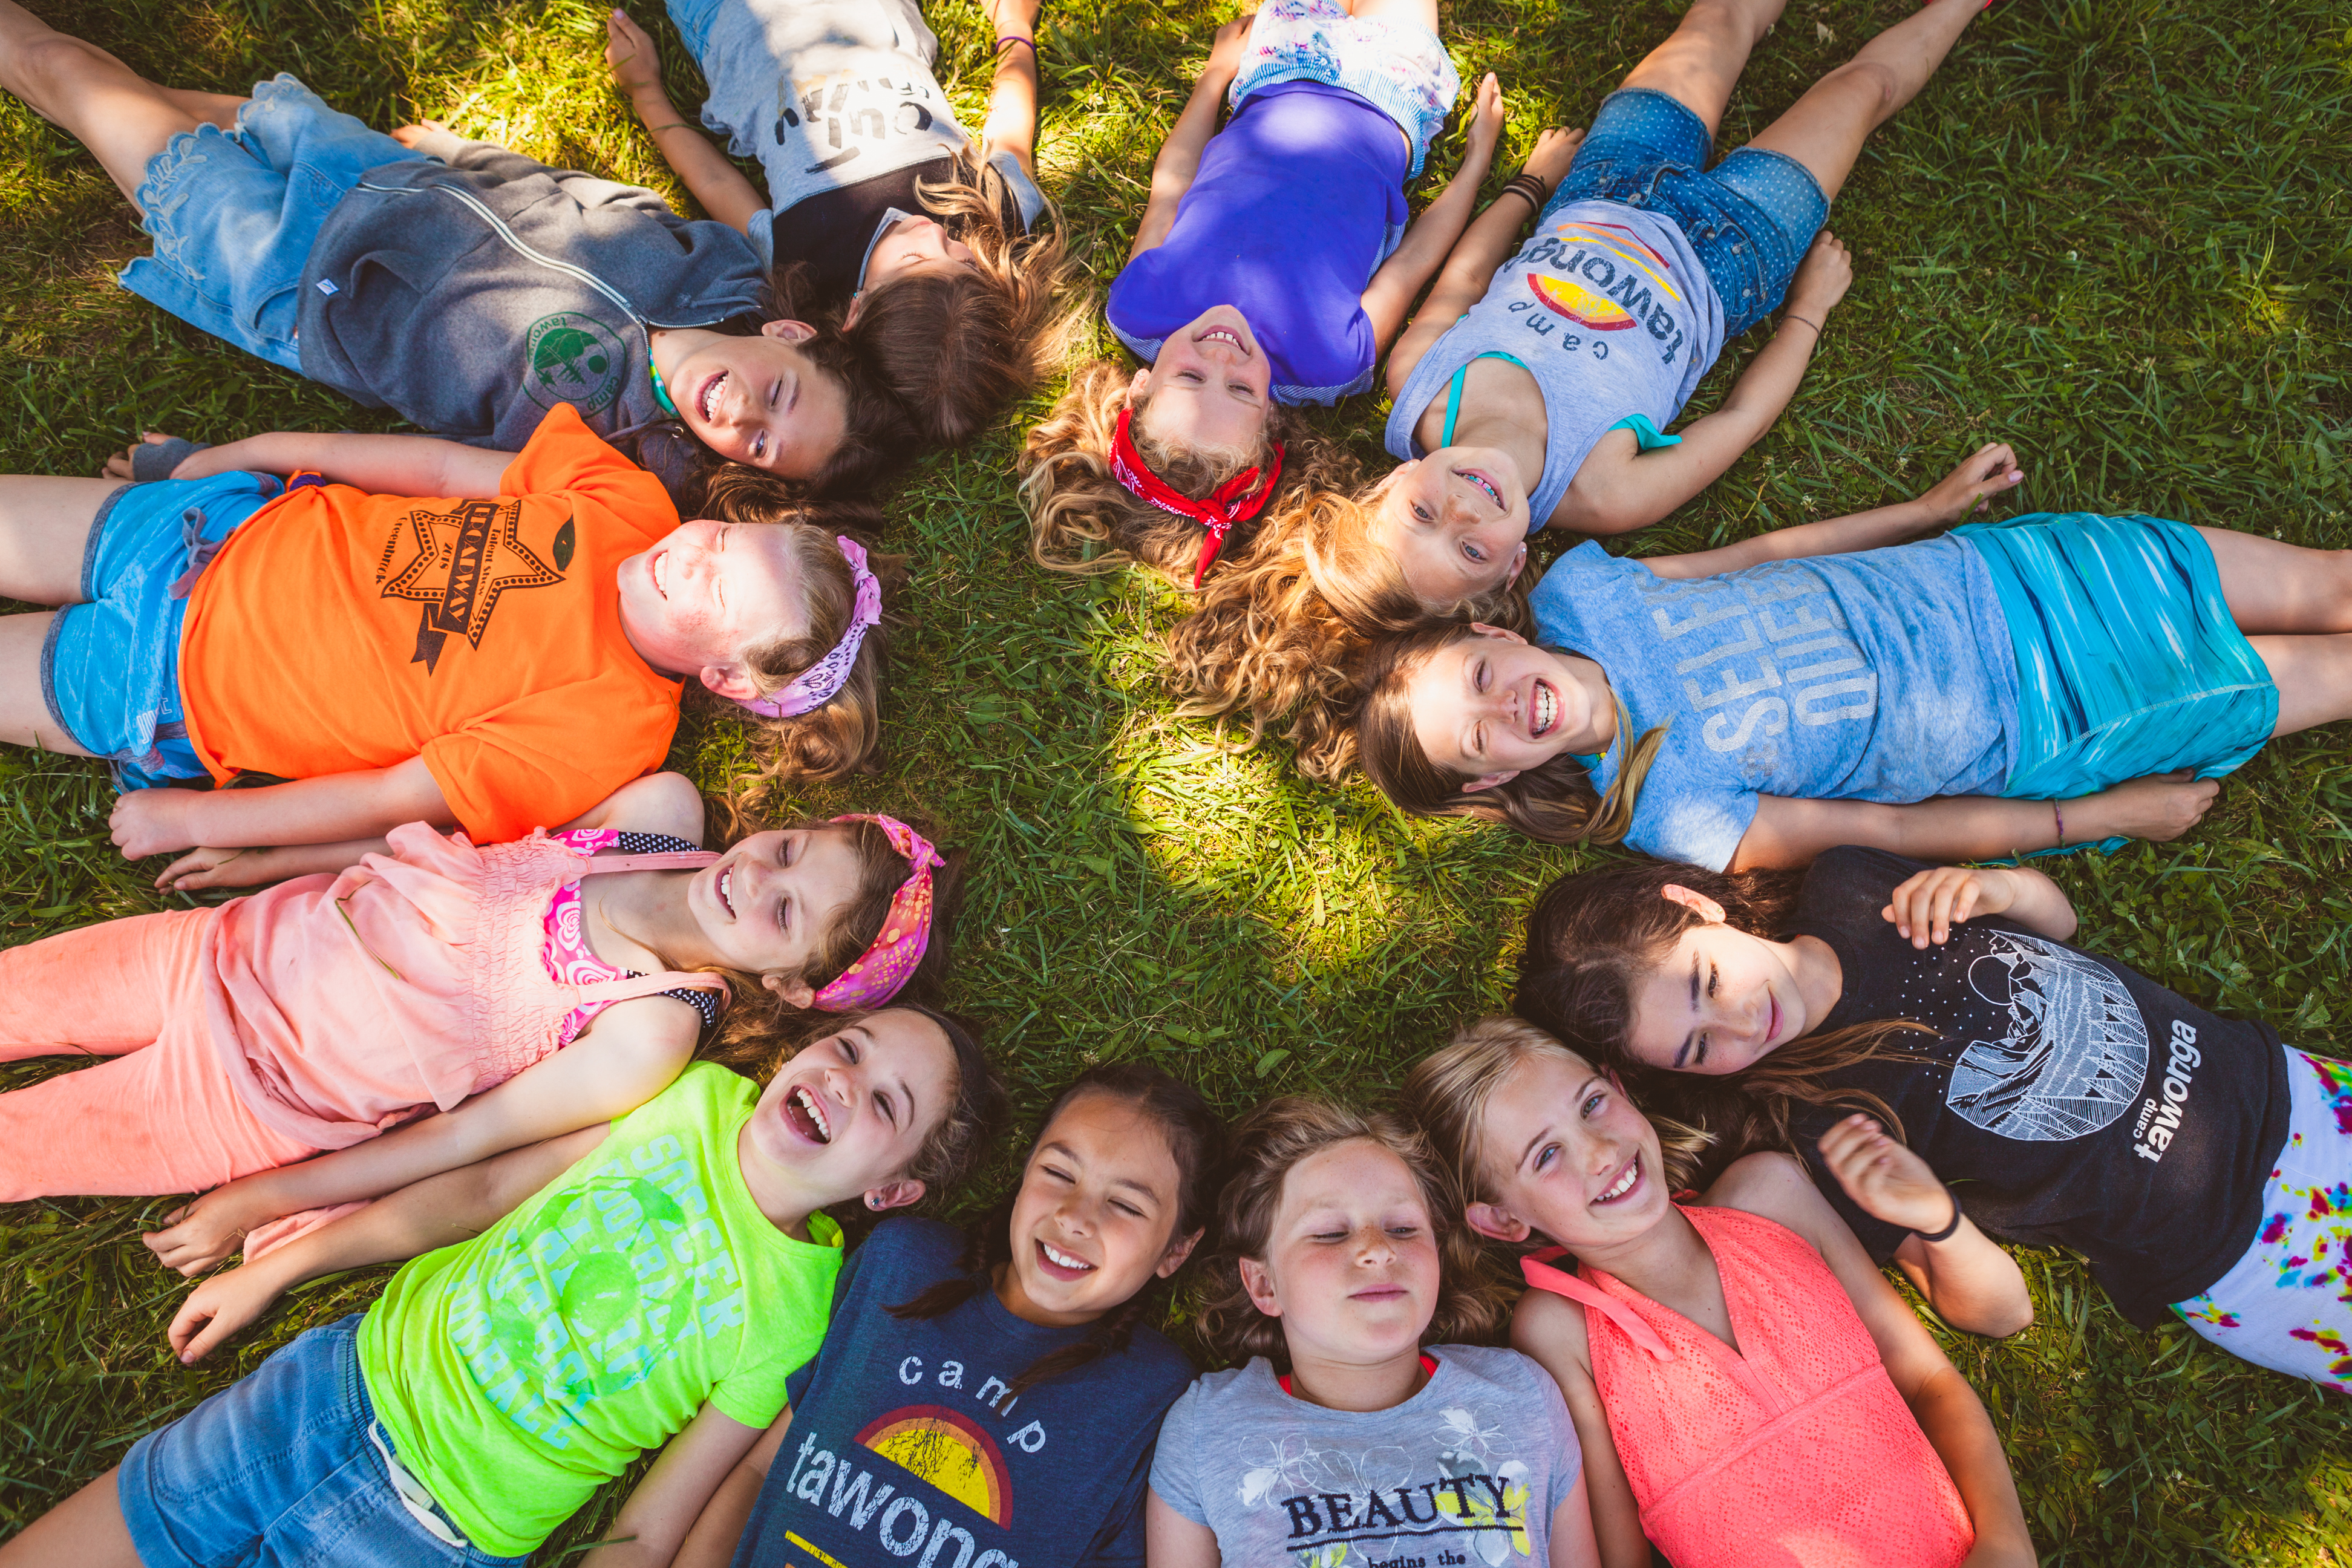 A group of kids who attended Jewish summer camp smiling